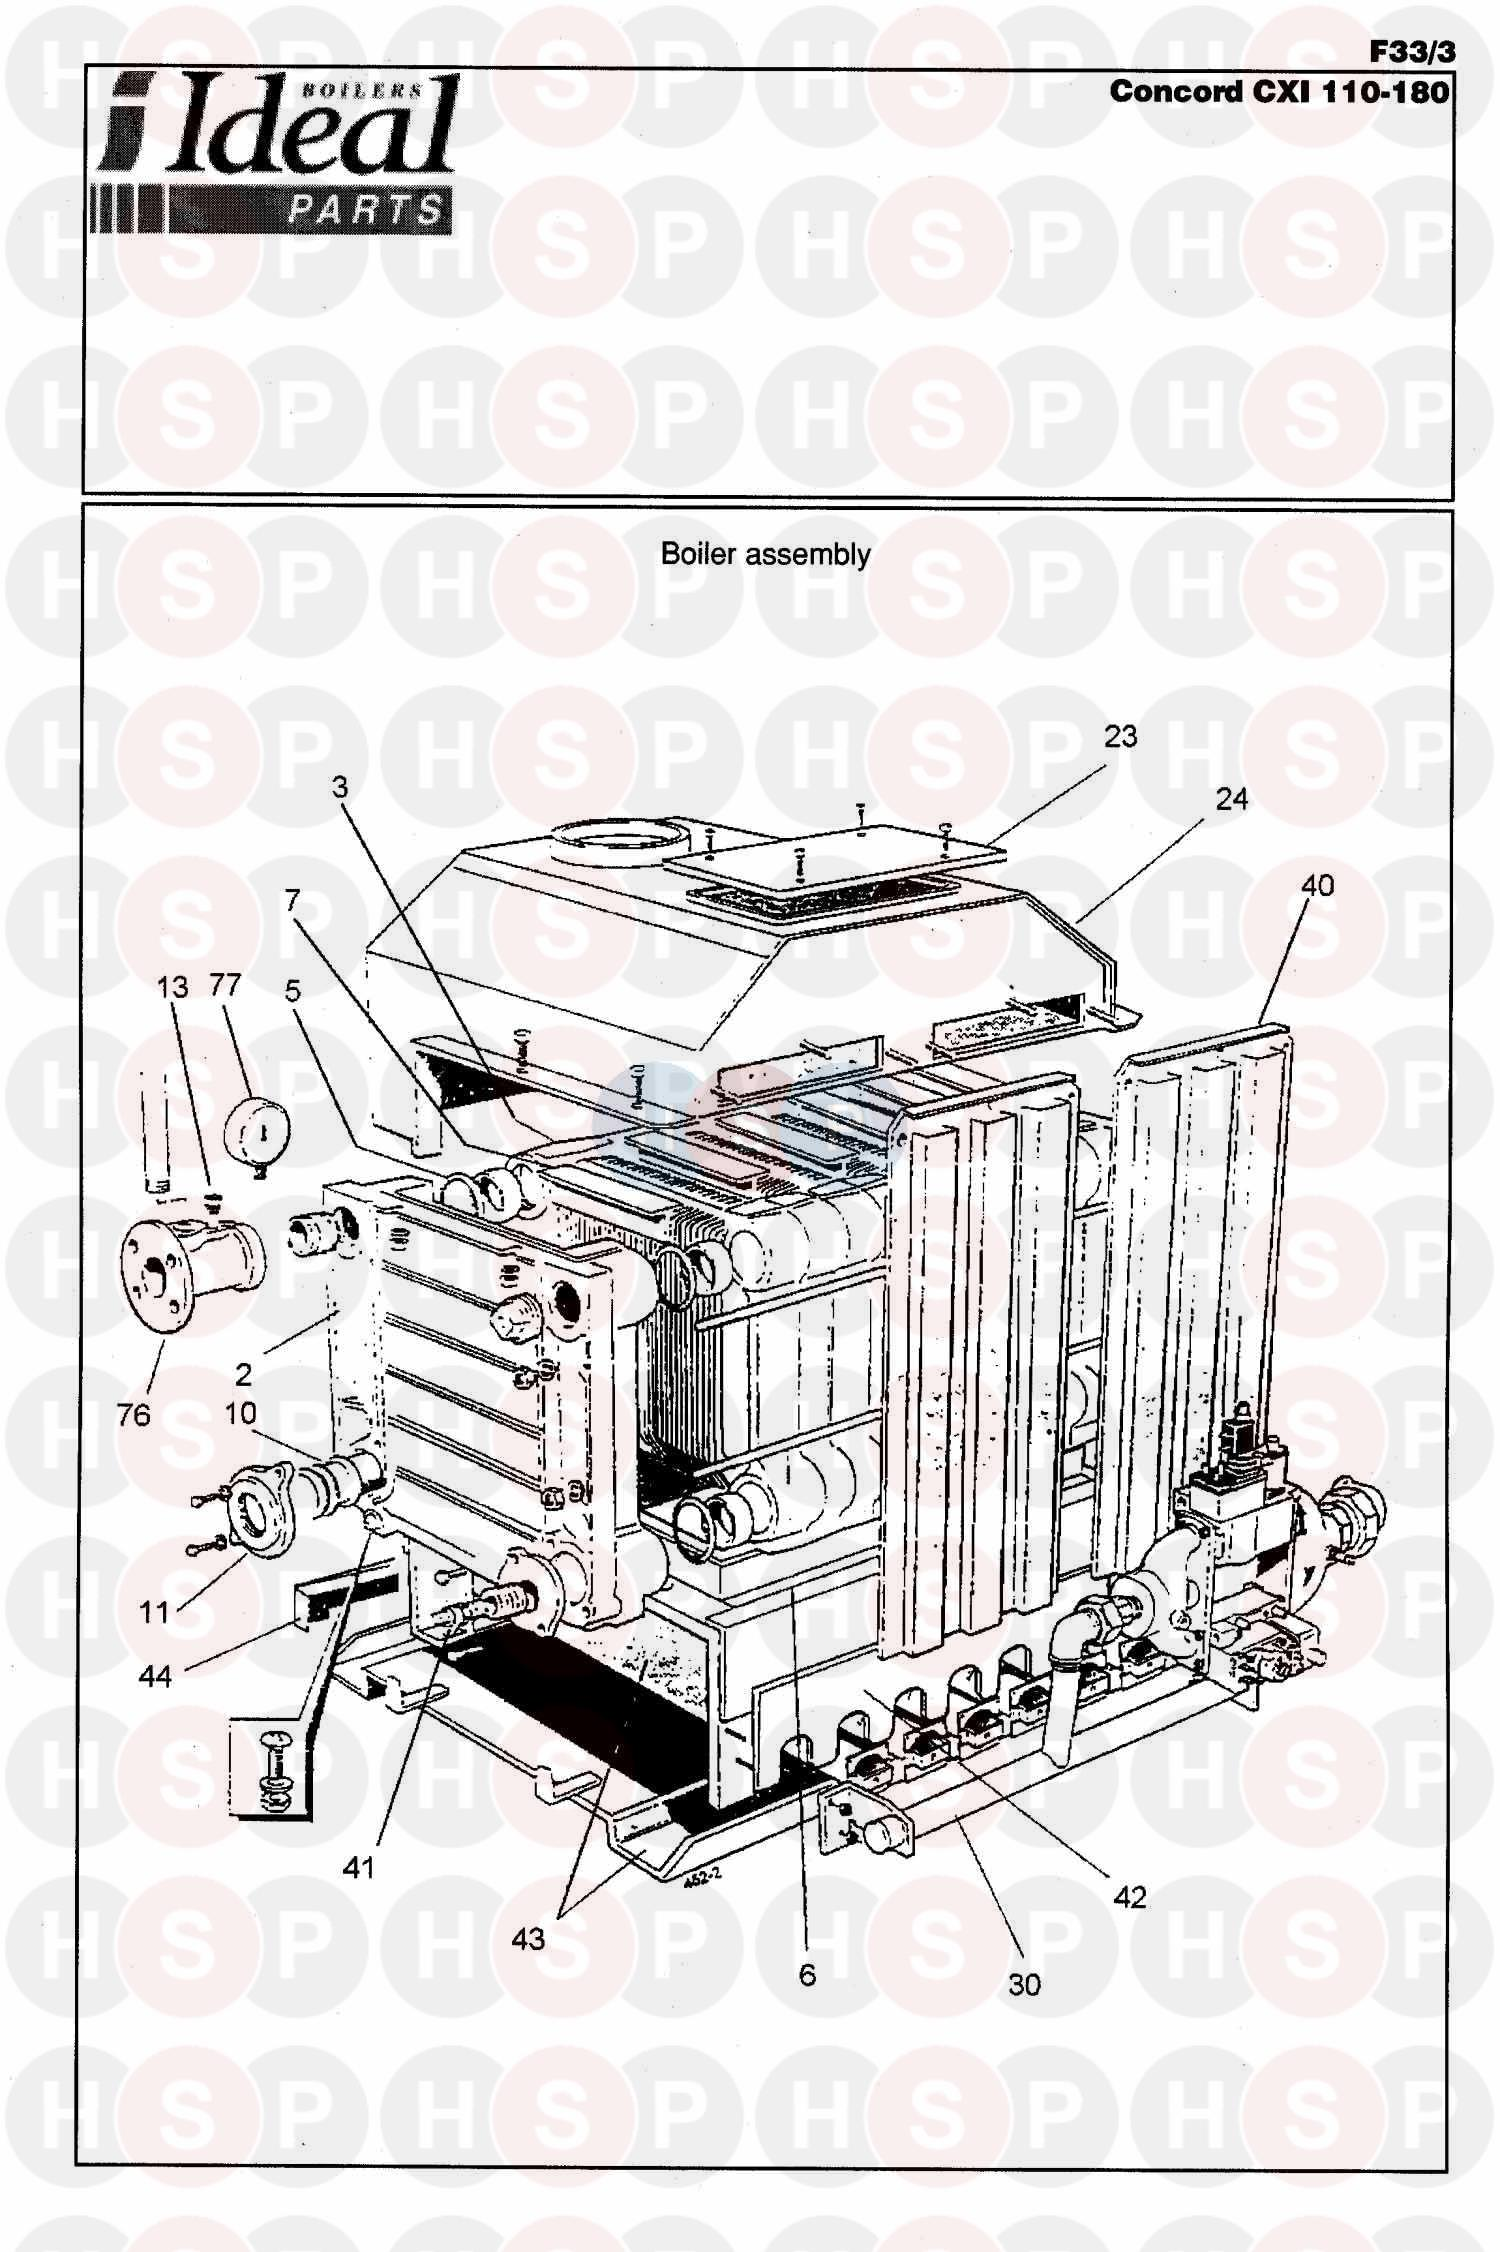 Ideal CONCORD CXI 120 SERIES 2 (BOILER ASSEMBLY 1) Diagram